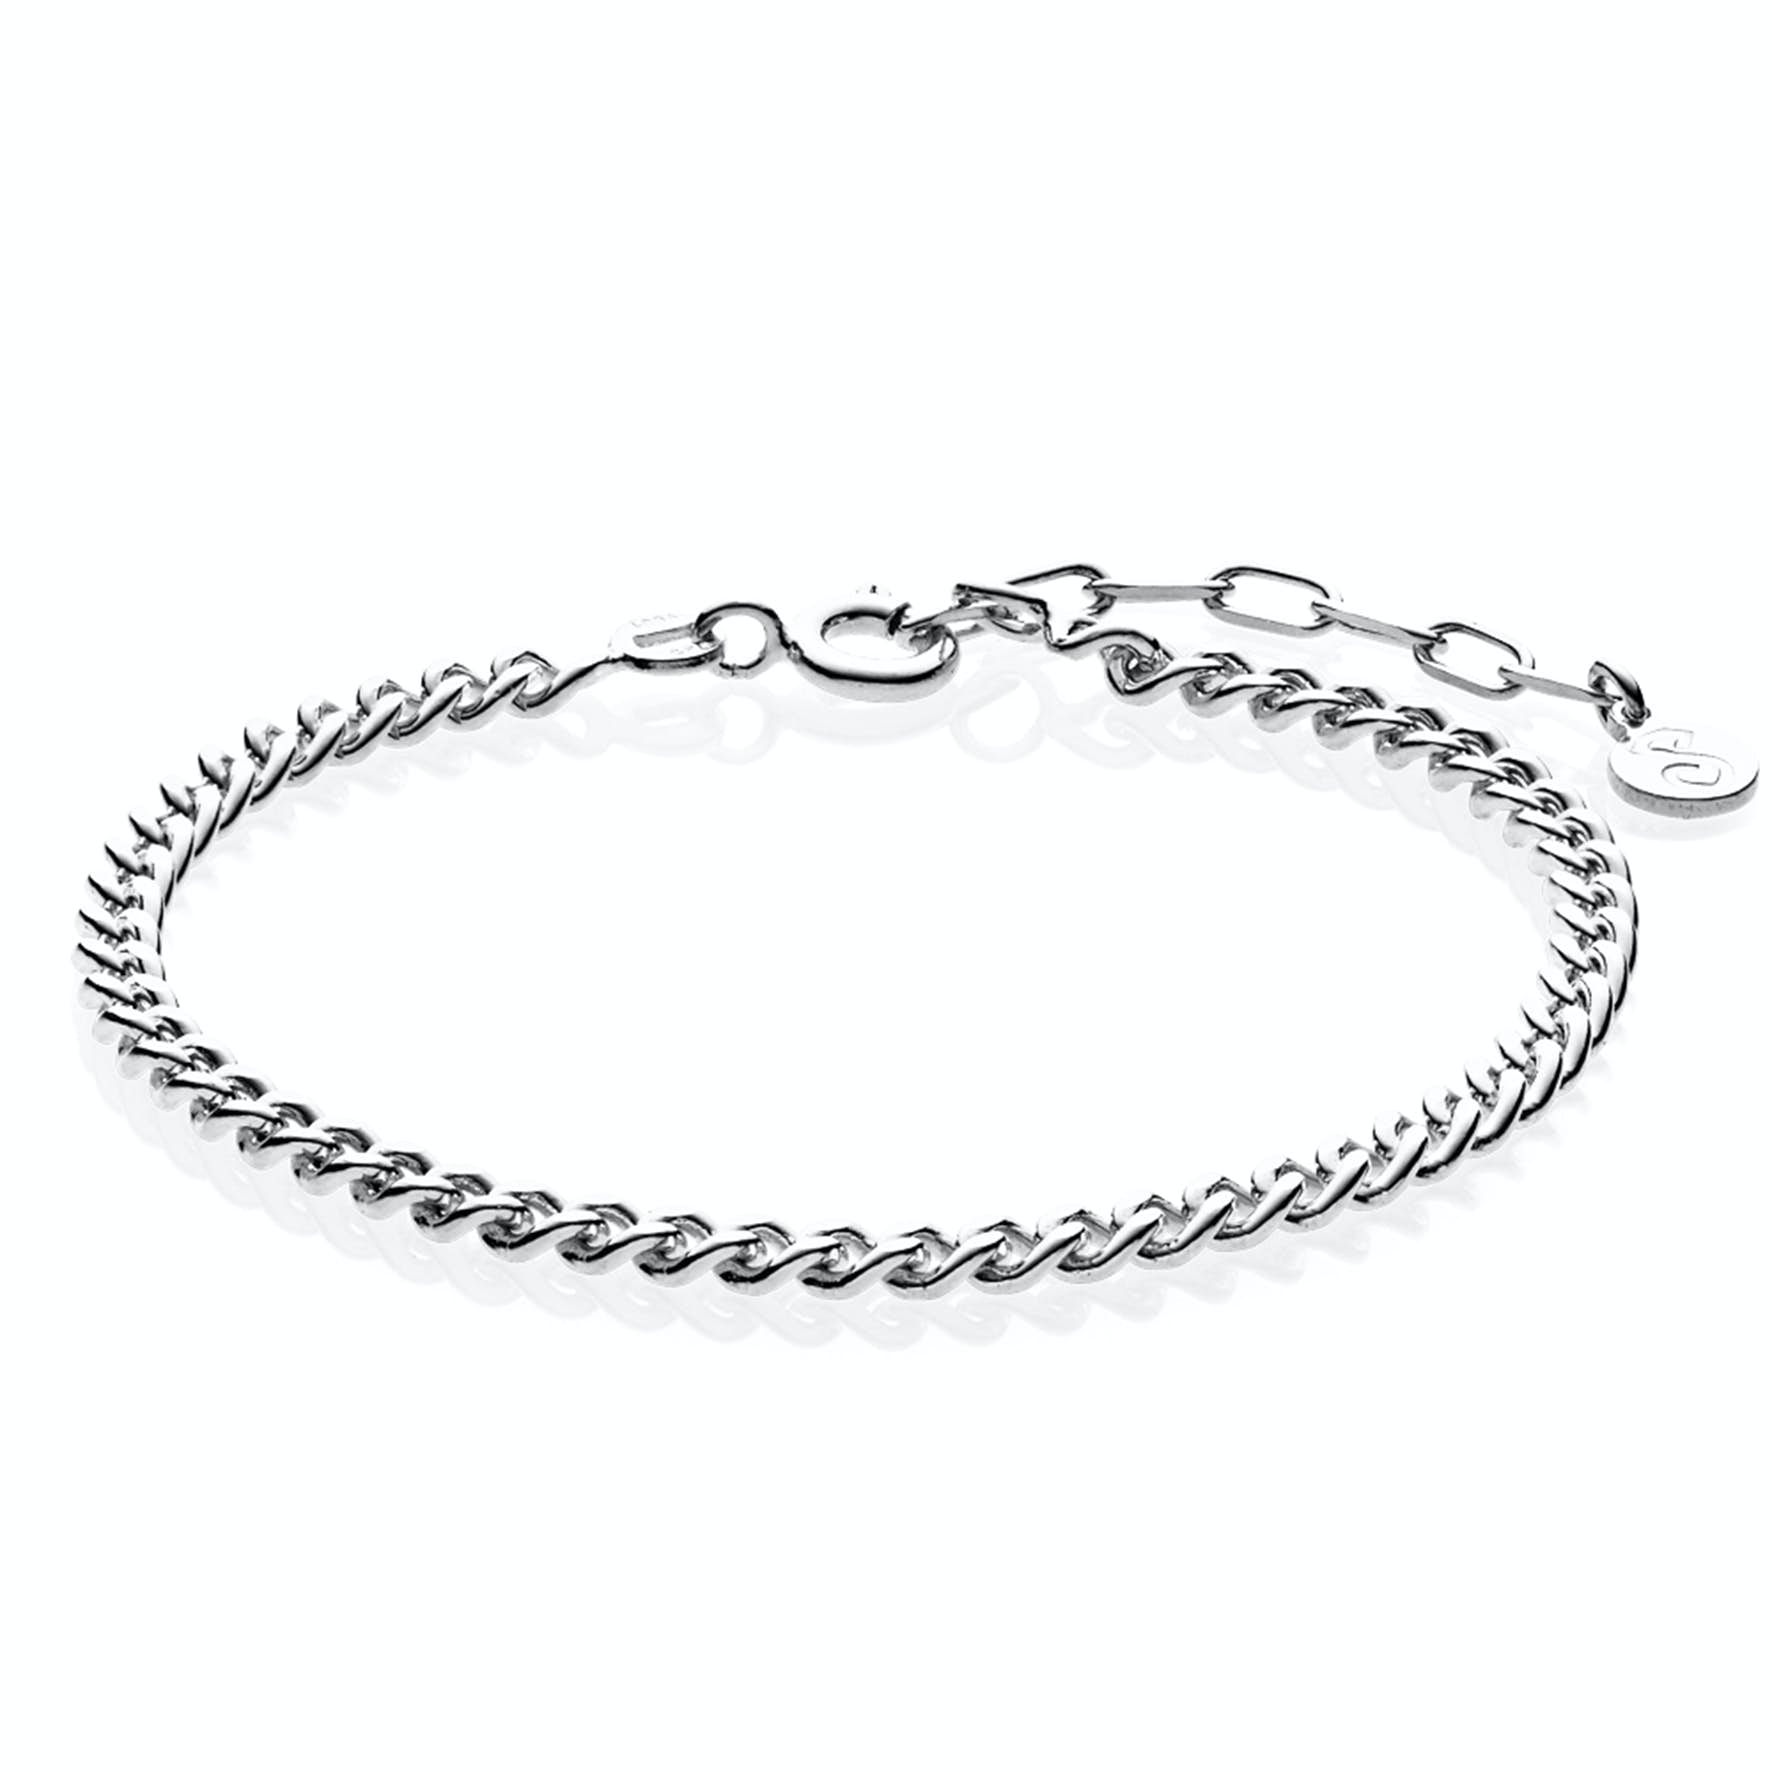 Becca Anklet from Sistie in Silver Sterling 925